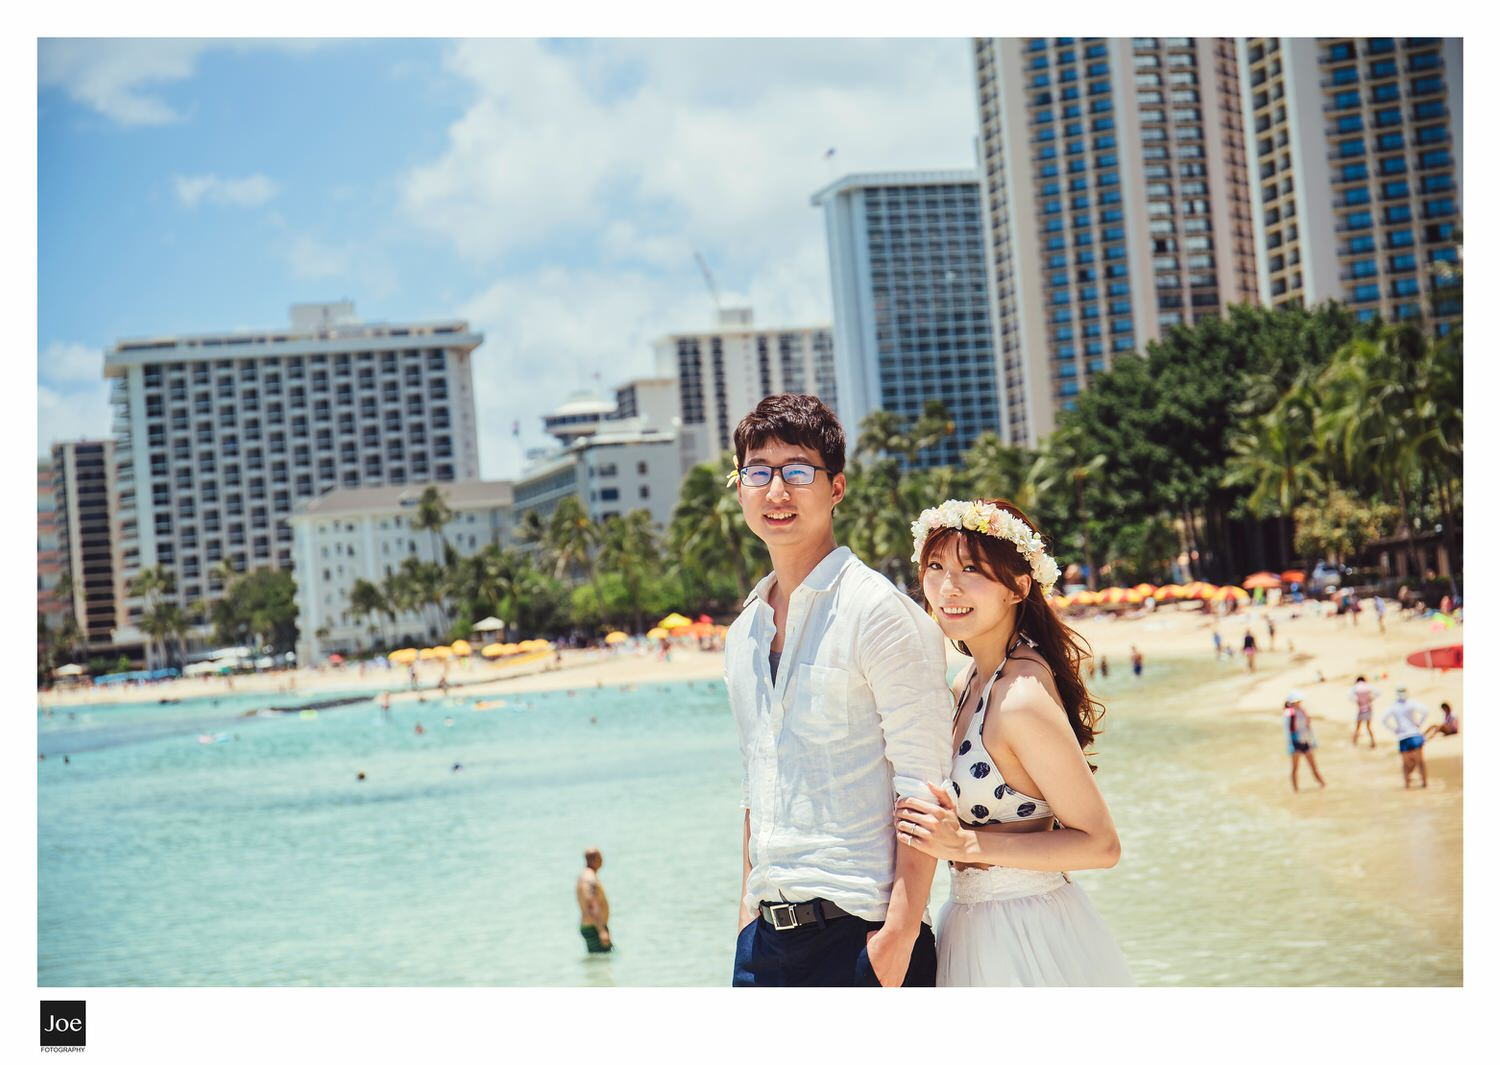 071-waikiki-beach-hawaii-pre-wedding-tiffany-tony-joe-fotography.jpg